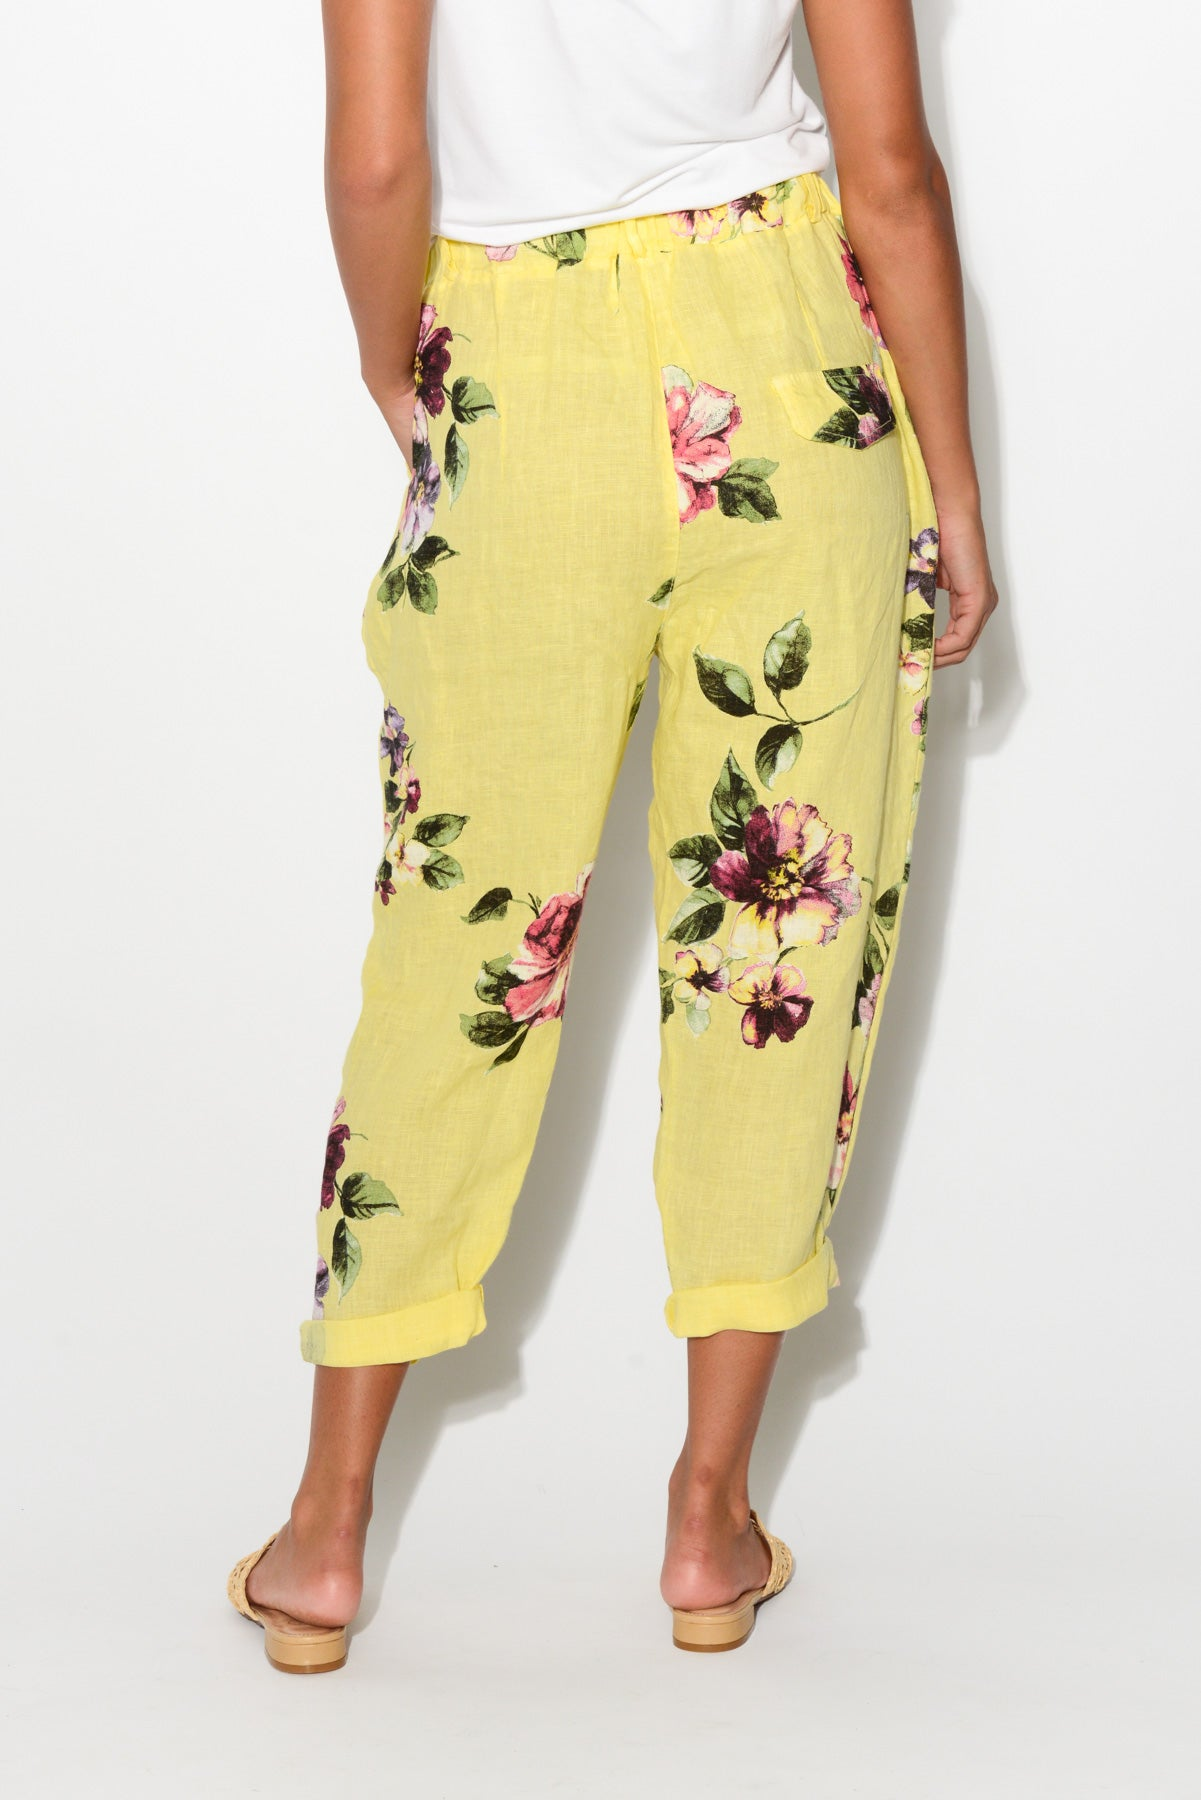 Lemon Floral Linen Pant - Blue Bungalow